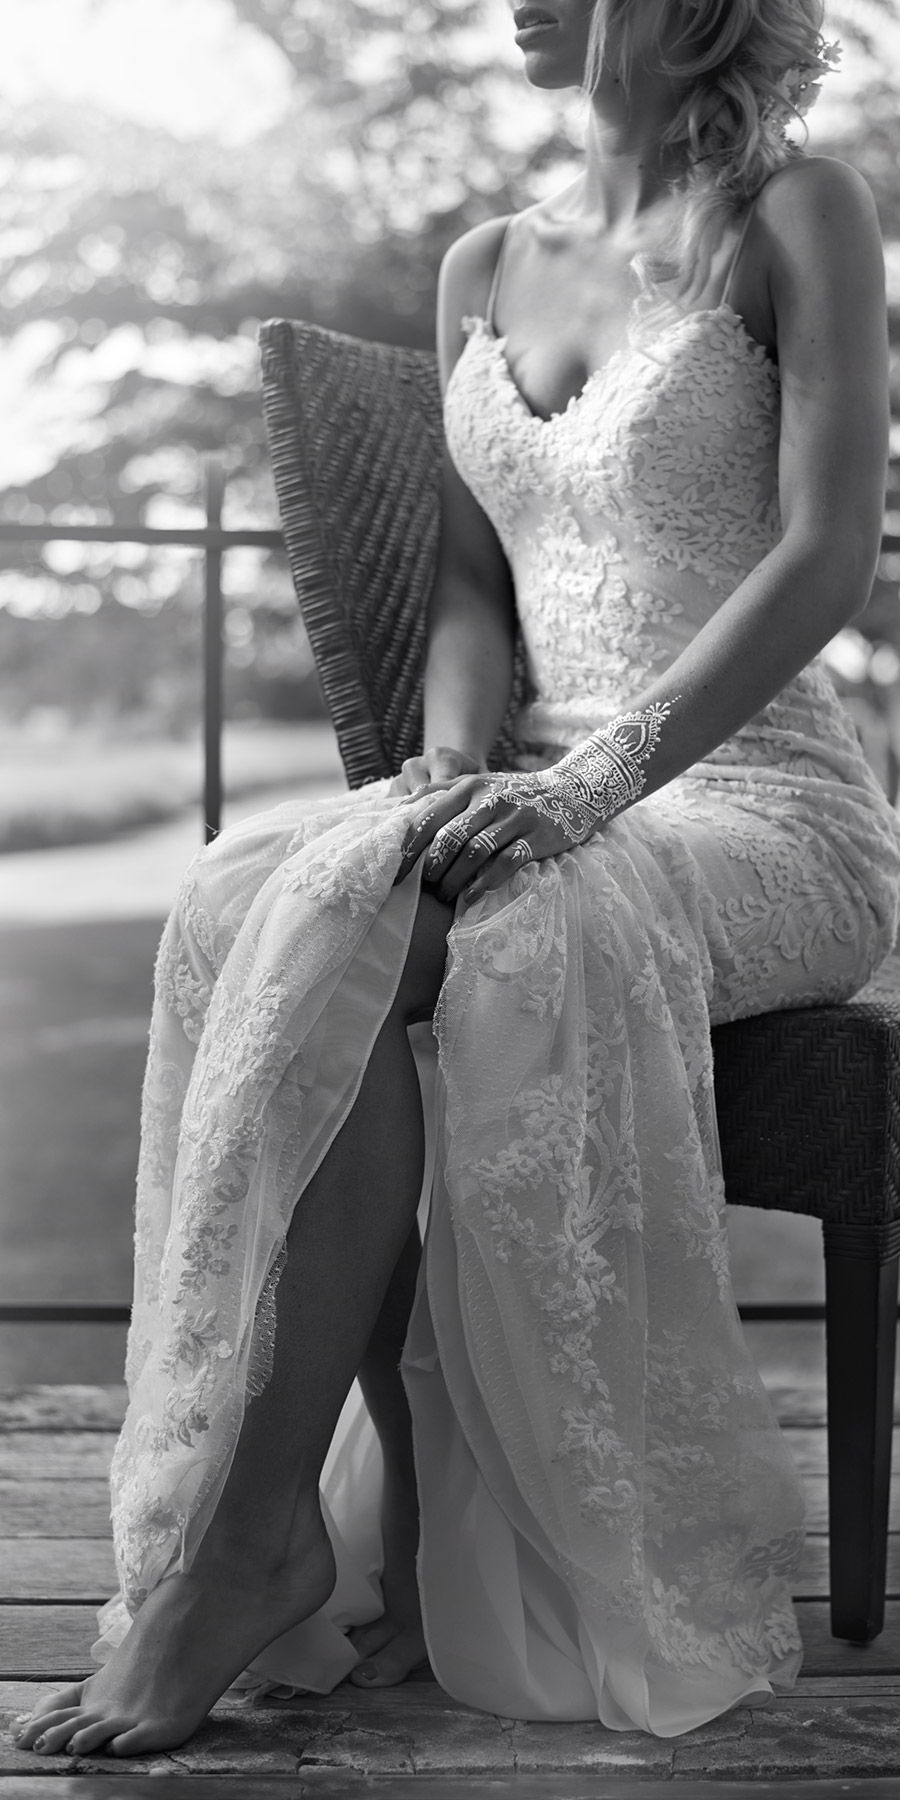 lavender field wedding photo shoot adorn invitations purple gold boho luxe inspiration lace wedding dress